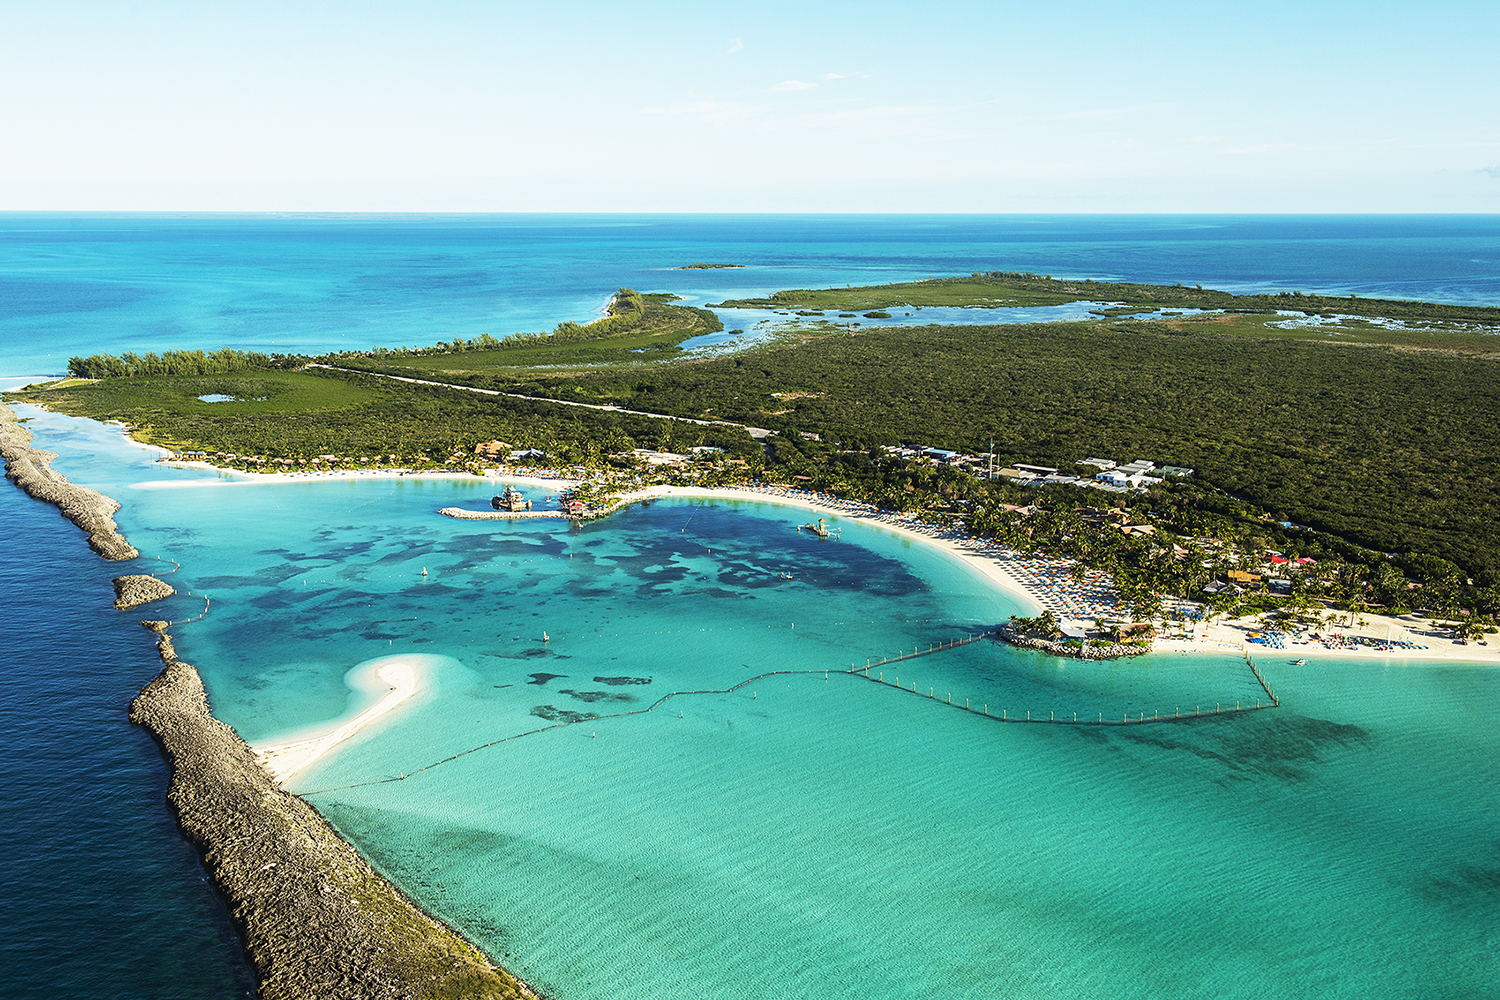 Disney Castaway Cay, located in the Abaco chain of The Bahamas